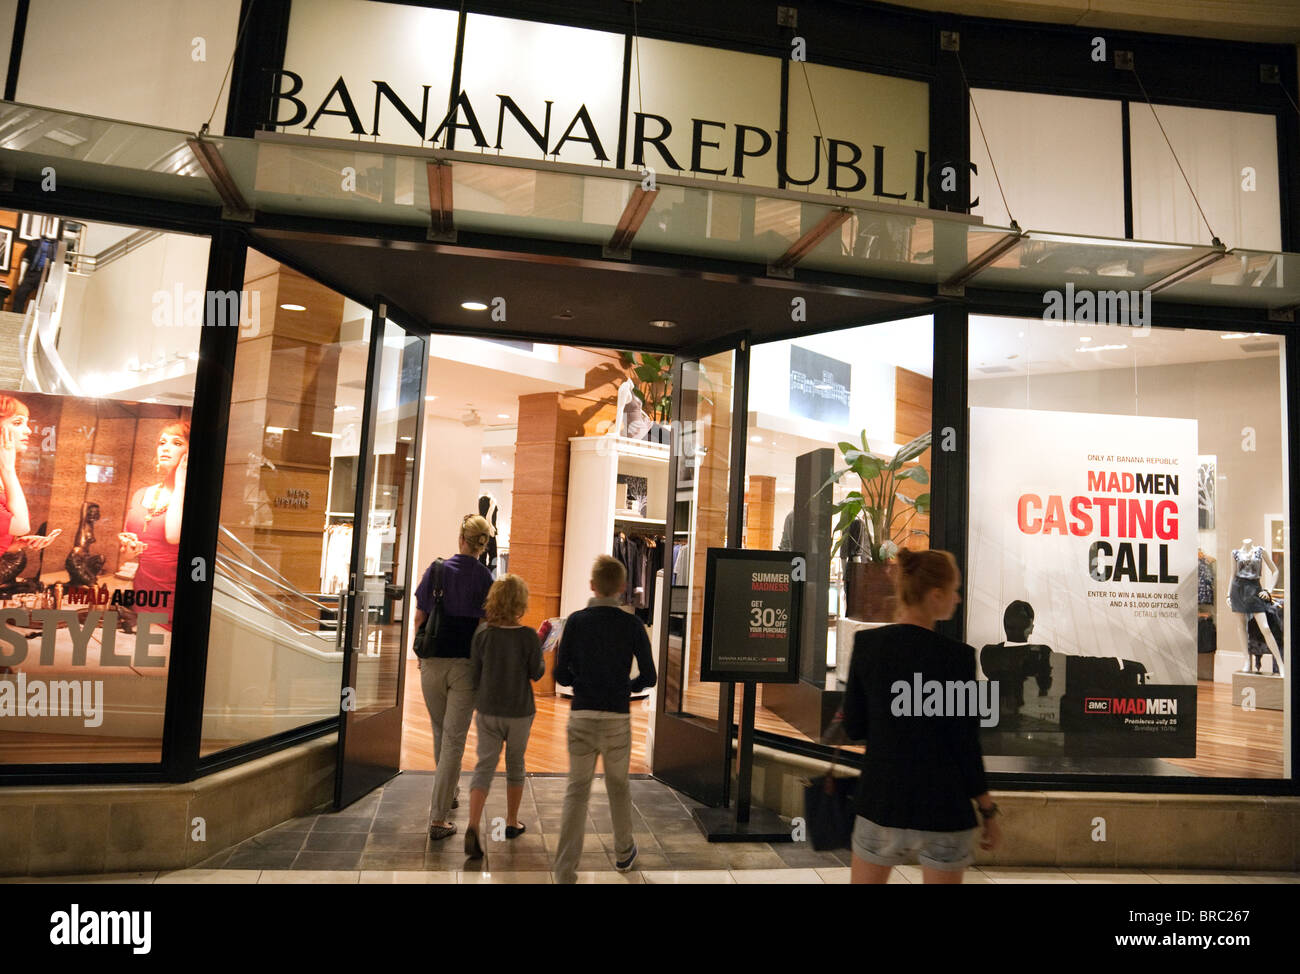 Banana Republic Offers Modern, Refined Clothing for Men and Women, Plus Shoes and Accessories. Skip to top navigation Skip to shopping bag Skip to main content Skip to footer links. Store Locator. Customer Service. Orders & Returns. Shipping & Delivery. Gift Cards. Buy eGift Cards. Buy Gift Cards. Perks. Your Rewards & Offers.